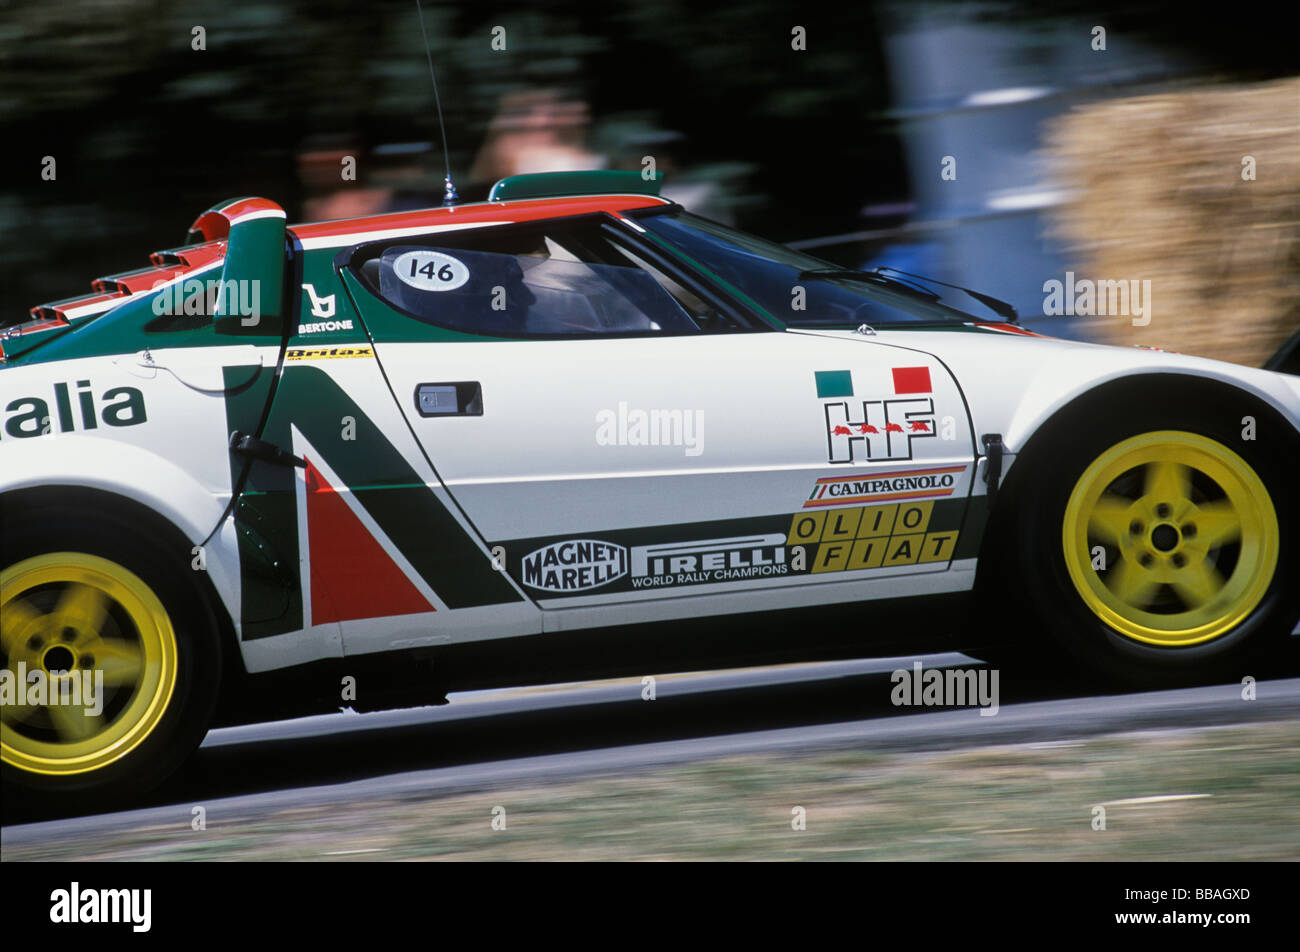 1977 monte carlo winning lancia stratos rally car at the 2005 stock photo royalty free image. Black Bedroom Furniture Sets. Home Design Ideas